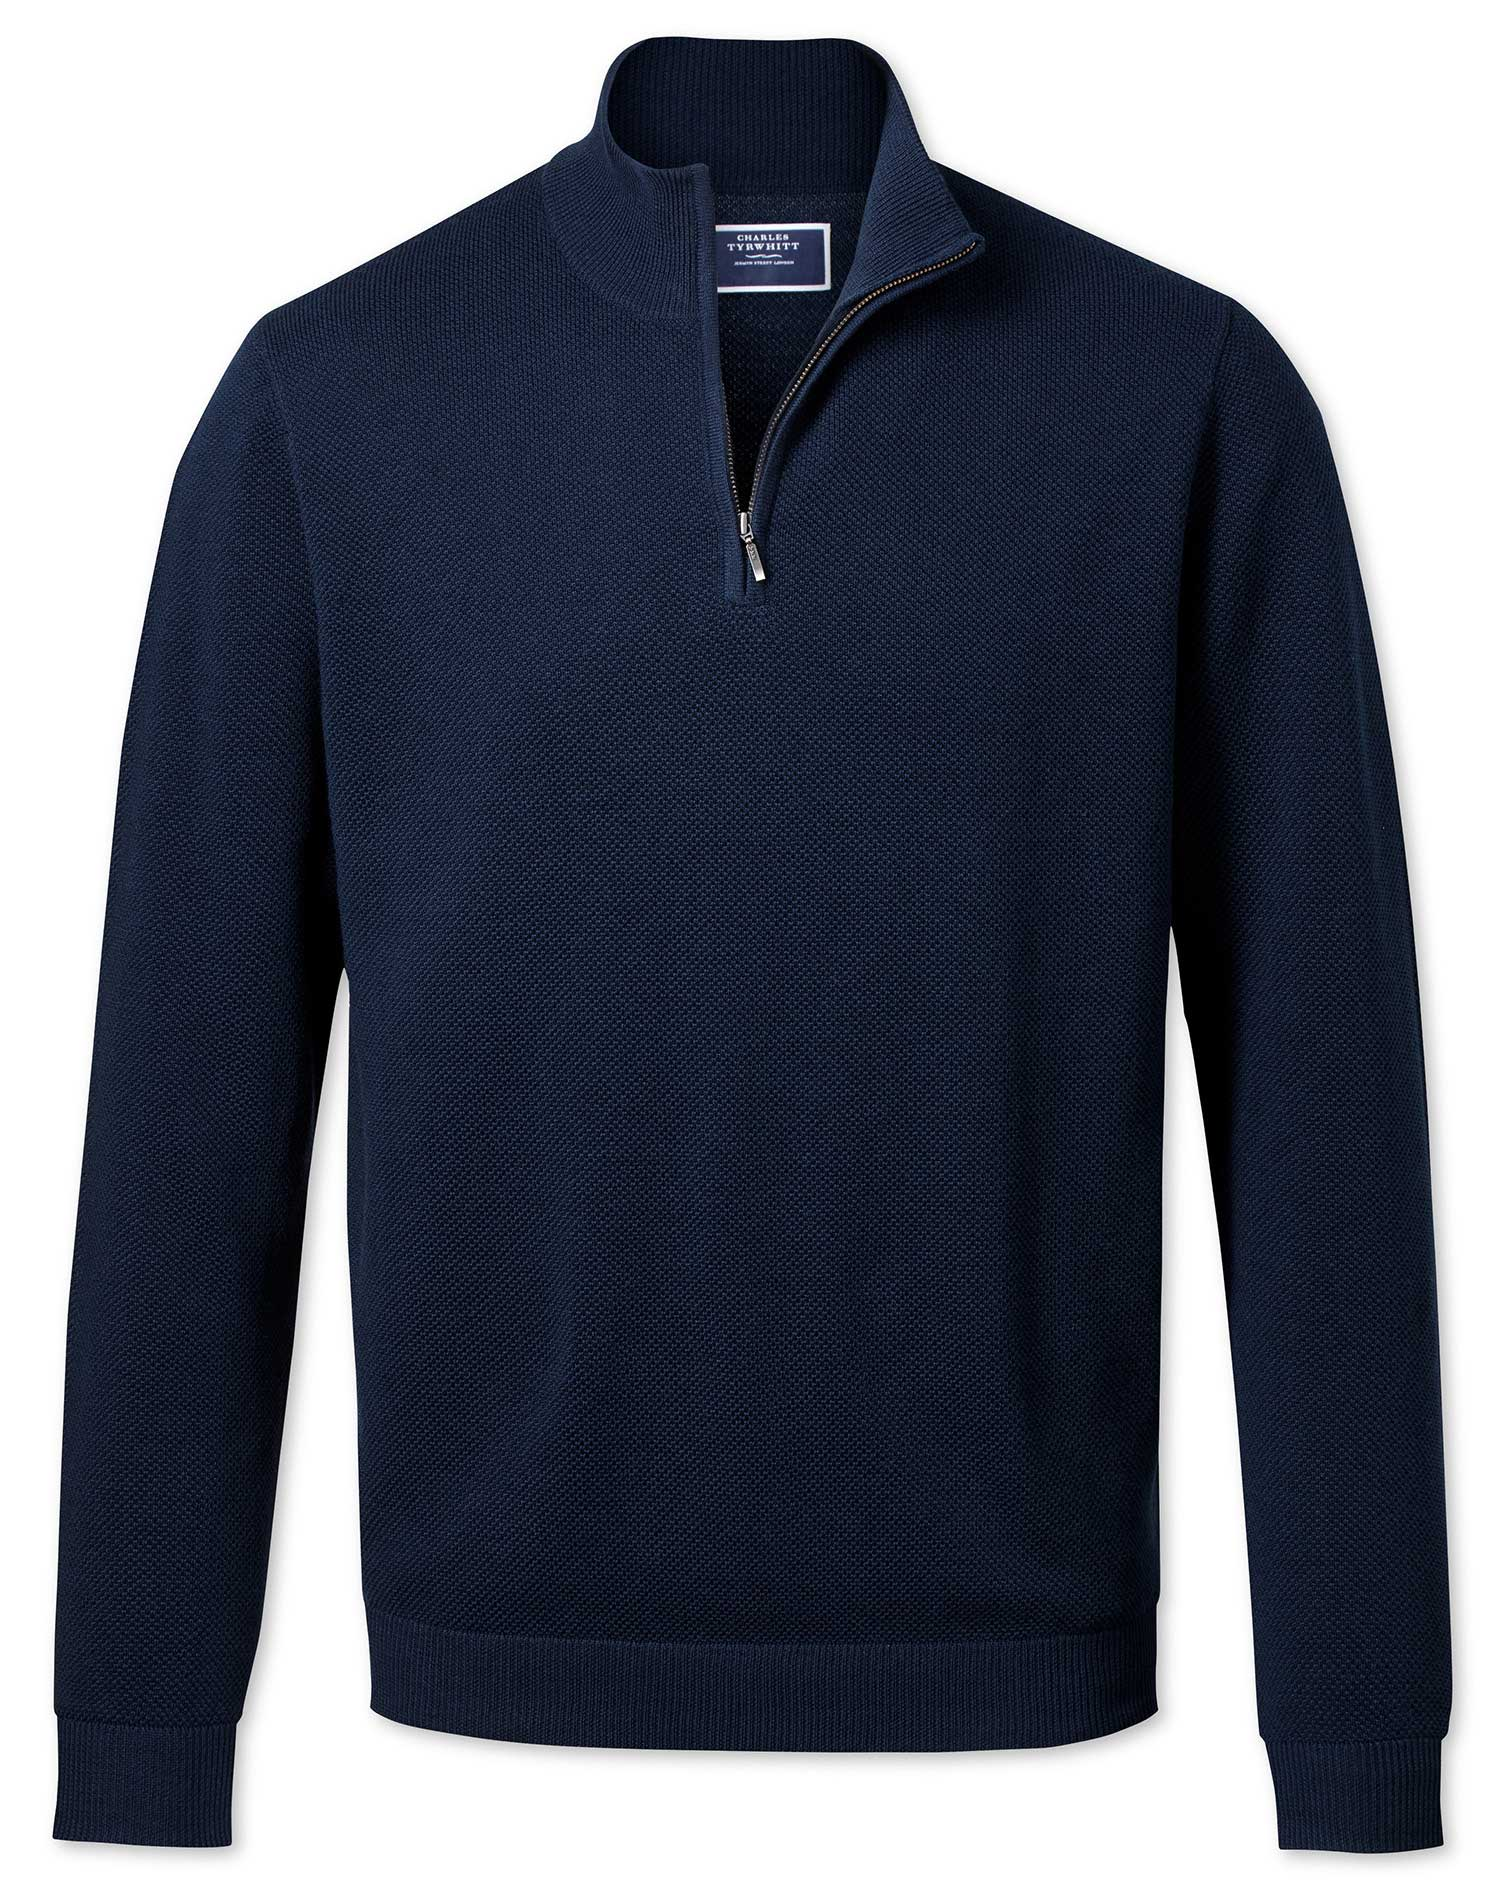 Navy Zip Neck Thermocool Wool Jumper Size XL by Charles Tyrwhitt